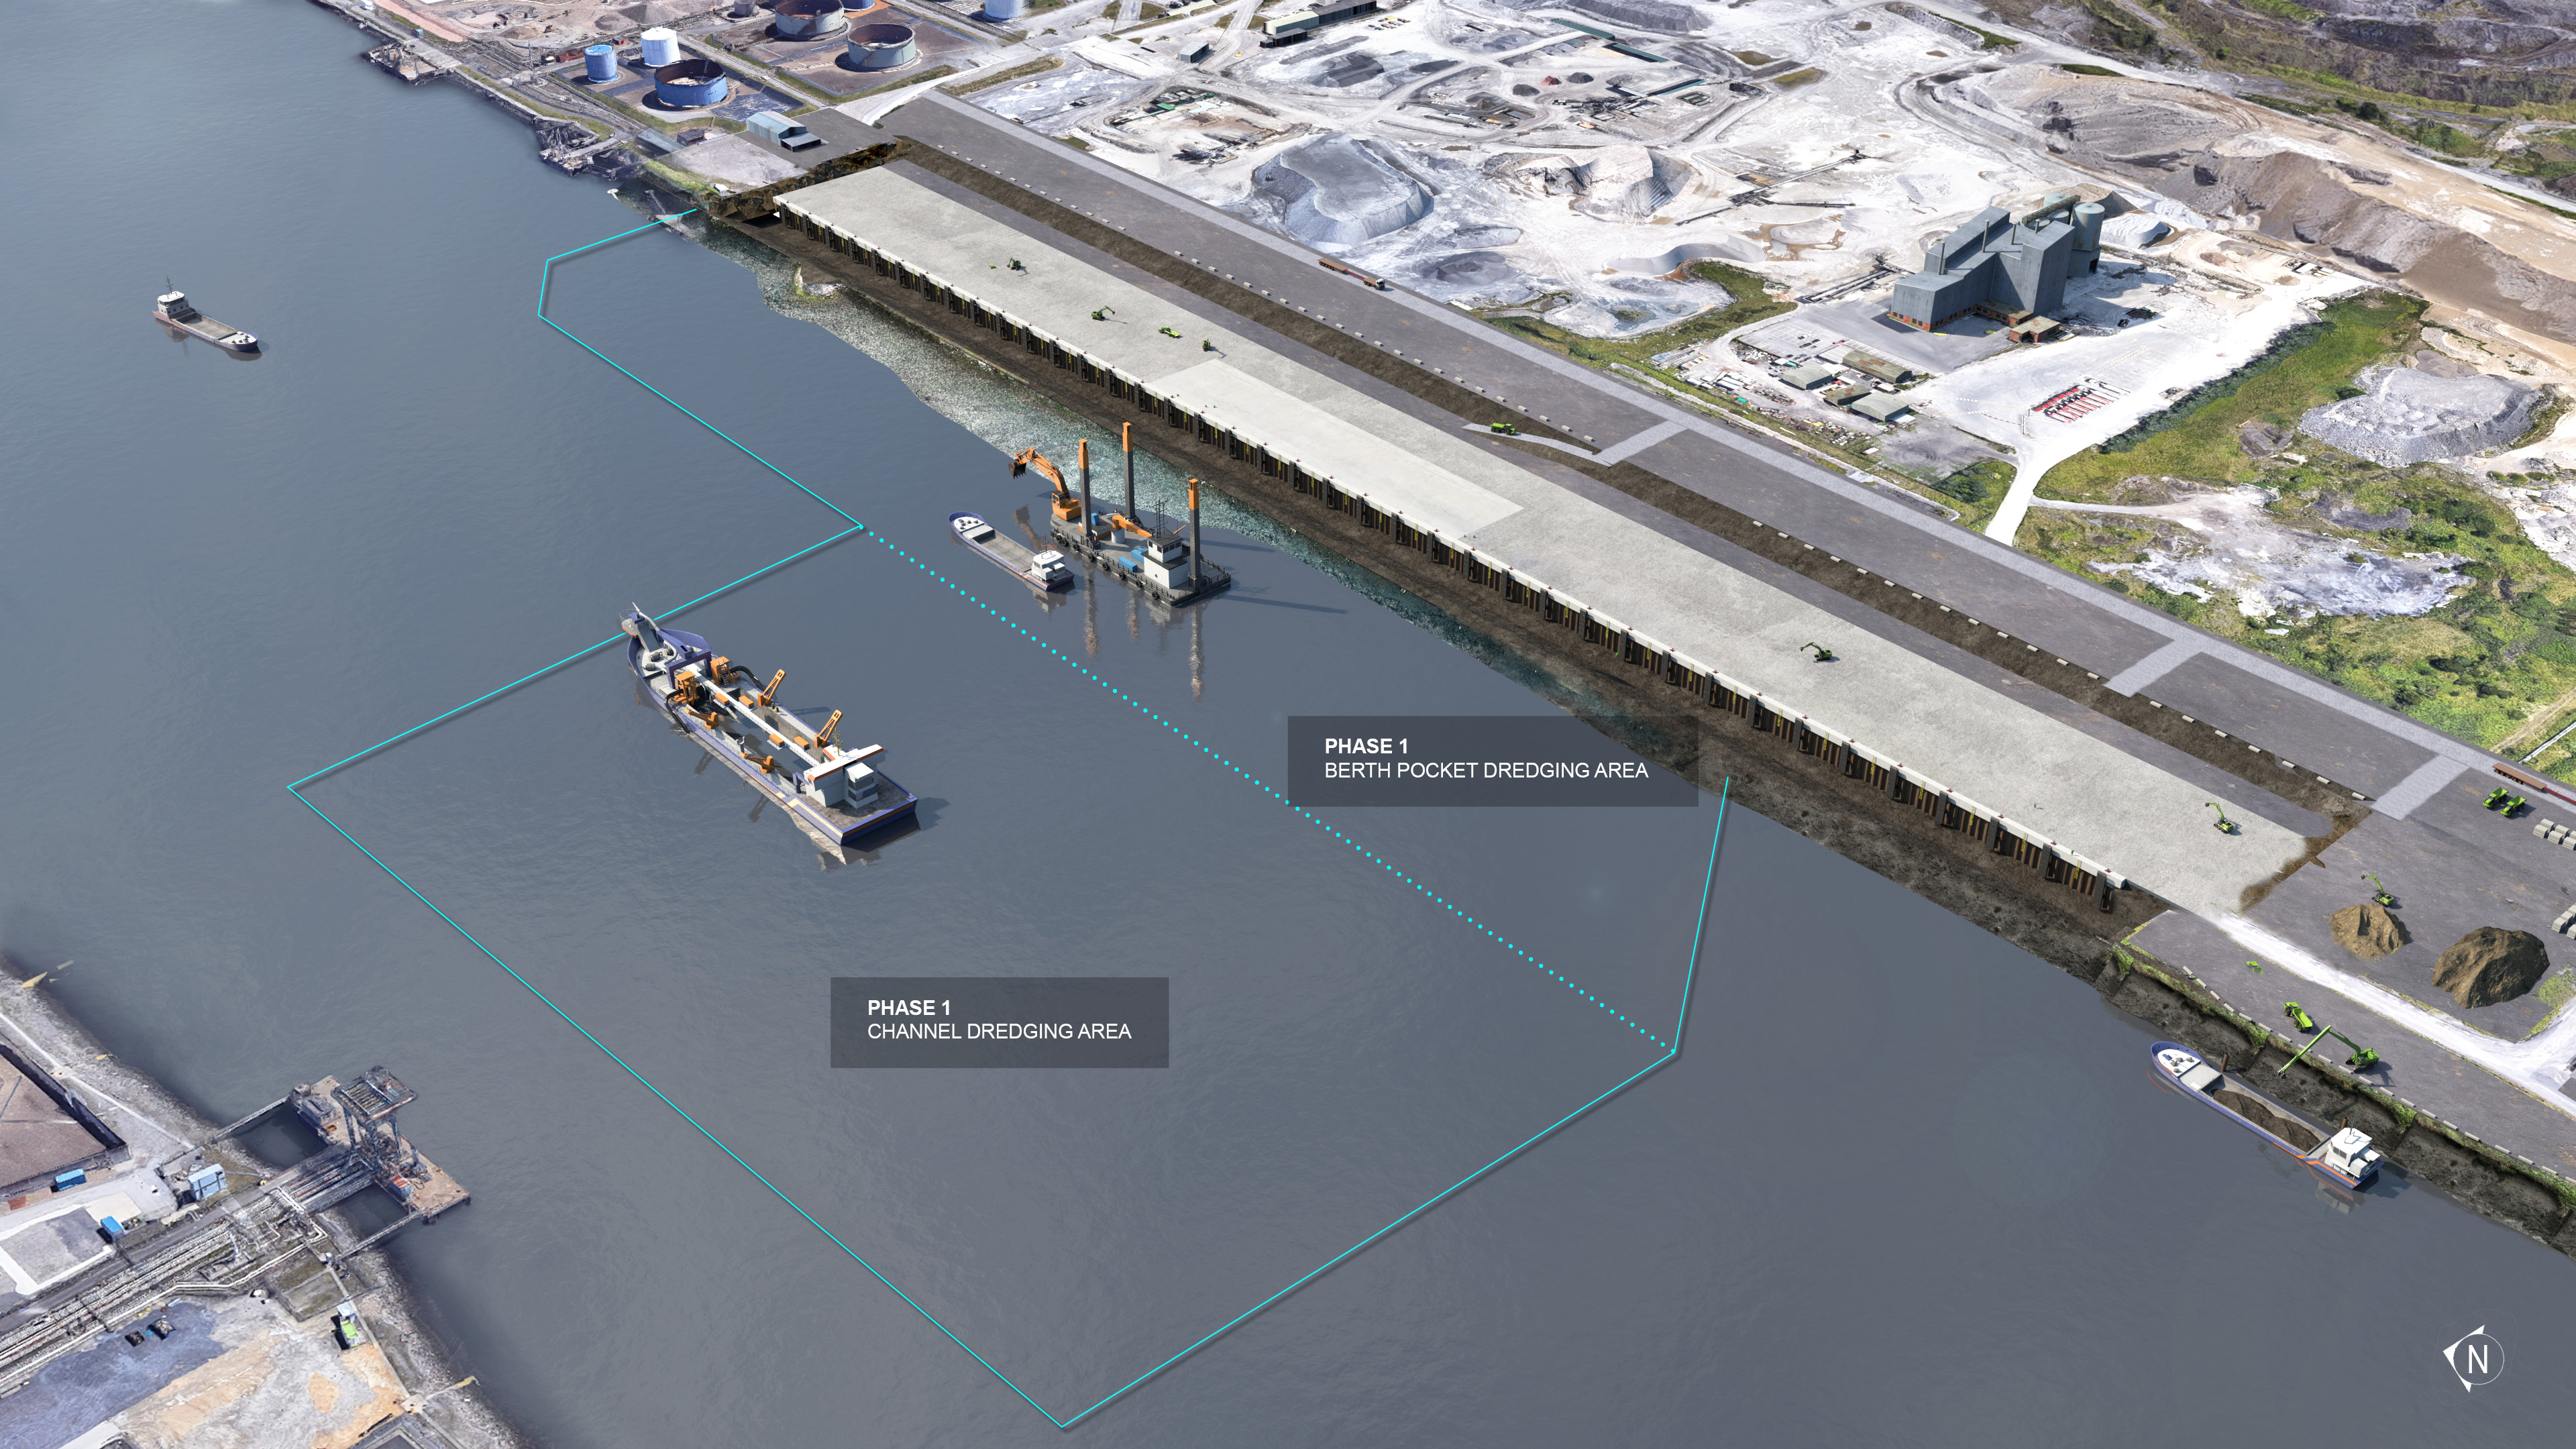 6.CGI of dredging overview of South Bank Quay